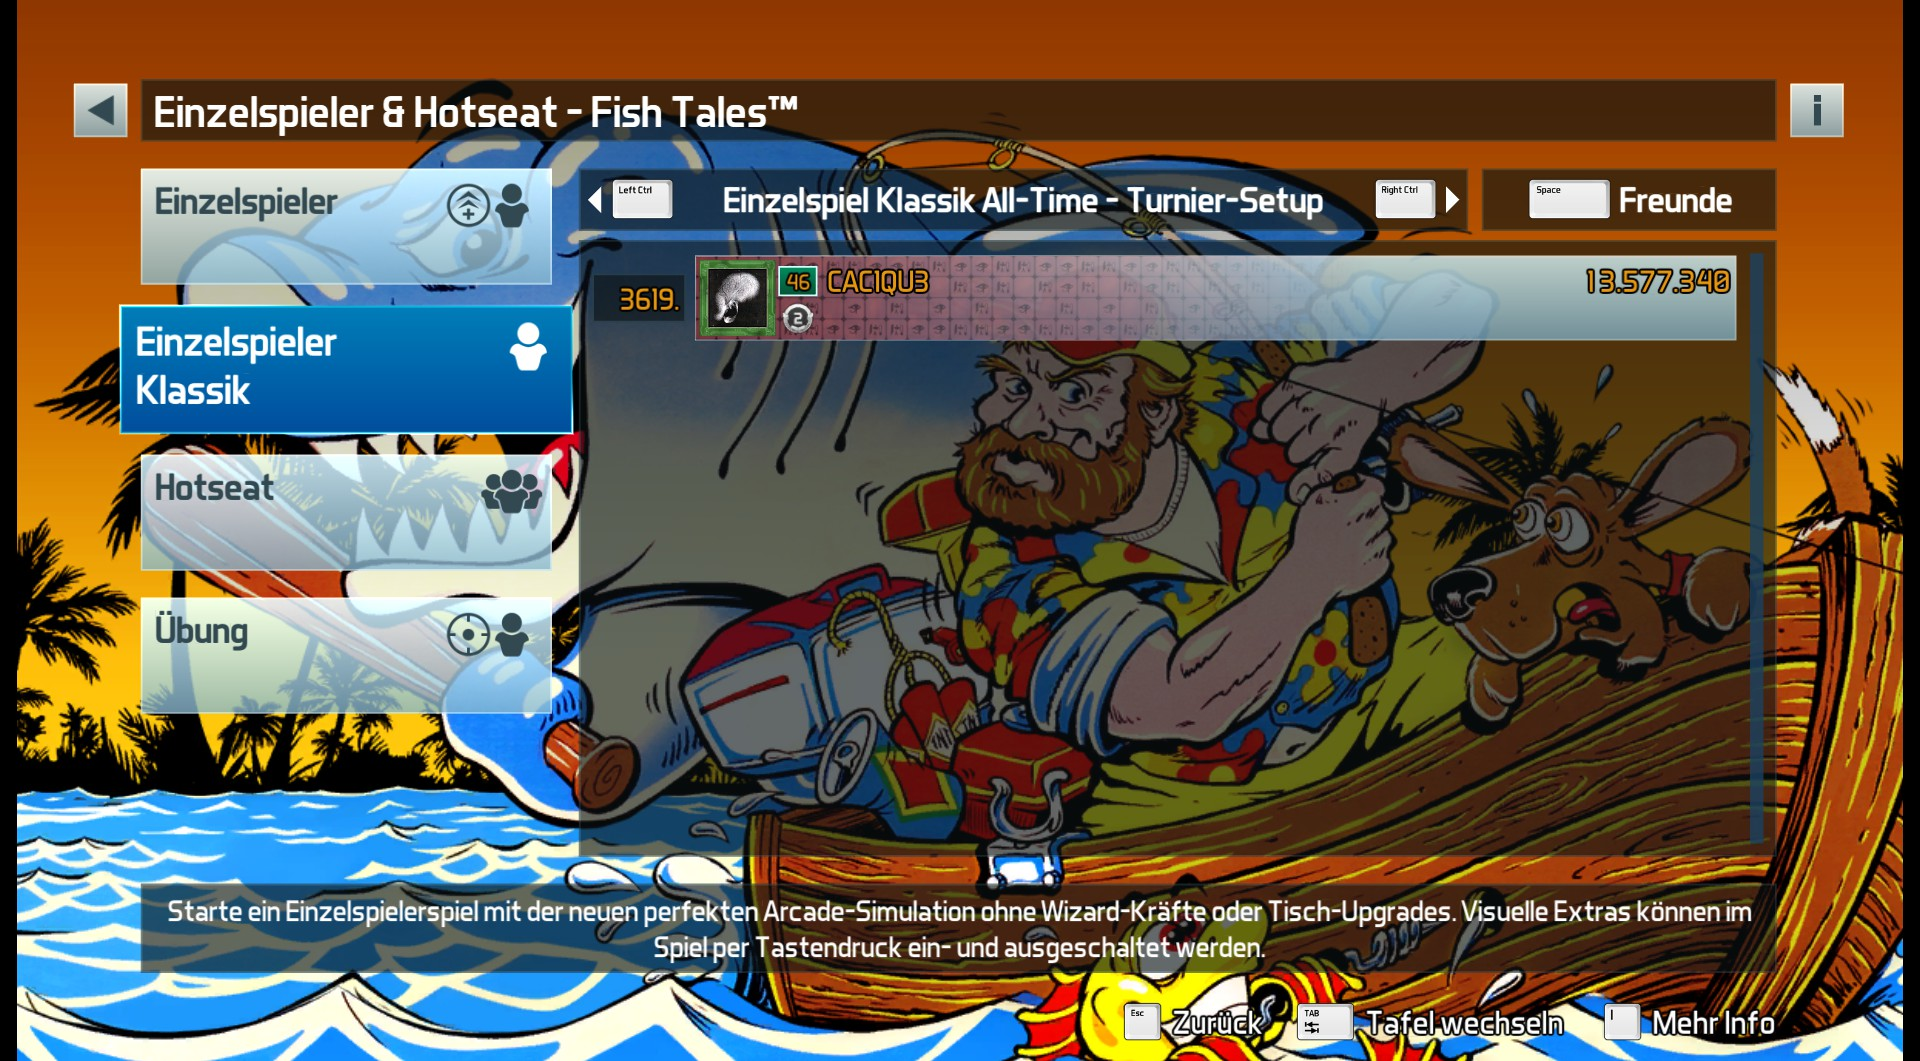 CAC1QU3: Pinball FX3: Fish Tales [Tournament] (PC) 13,577,340 points on 2019-03-26 21:02:48